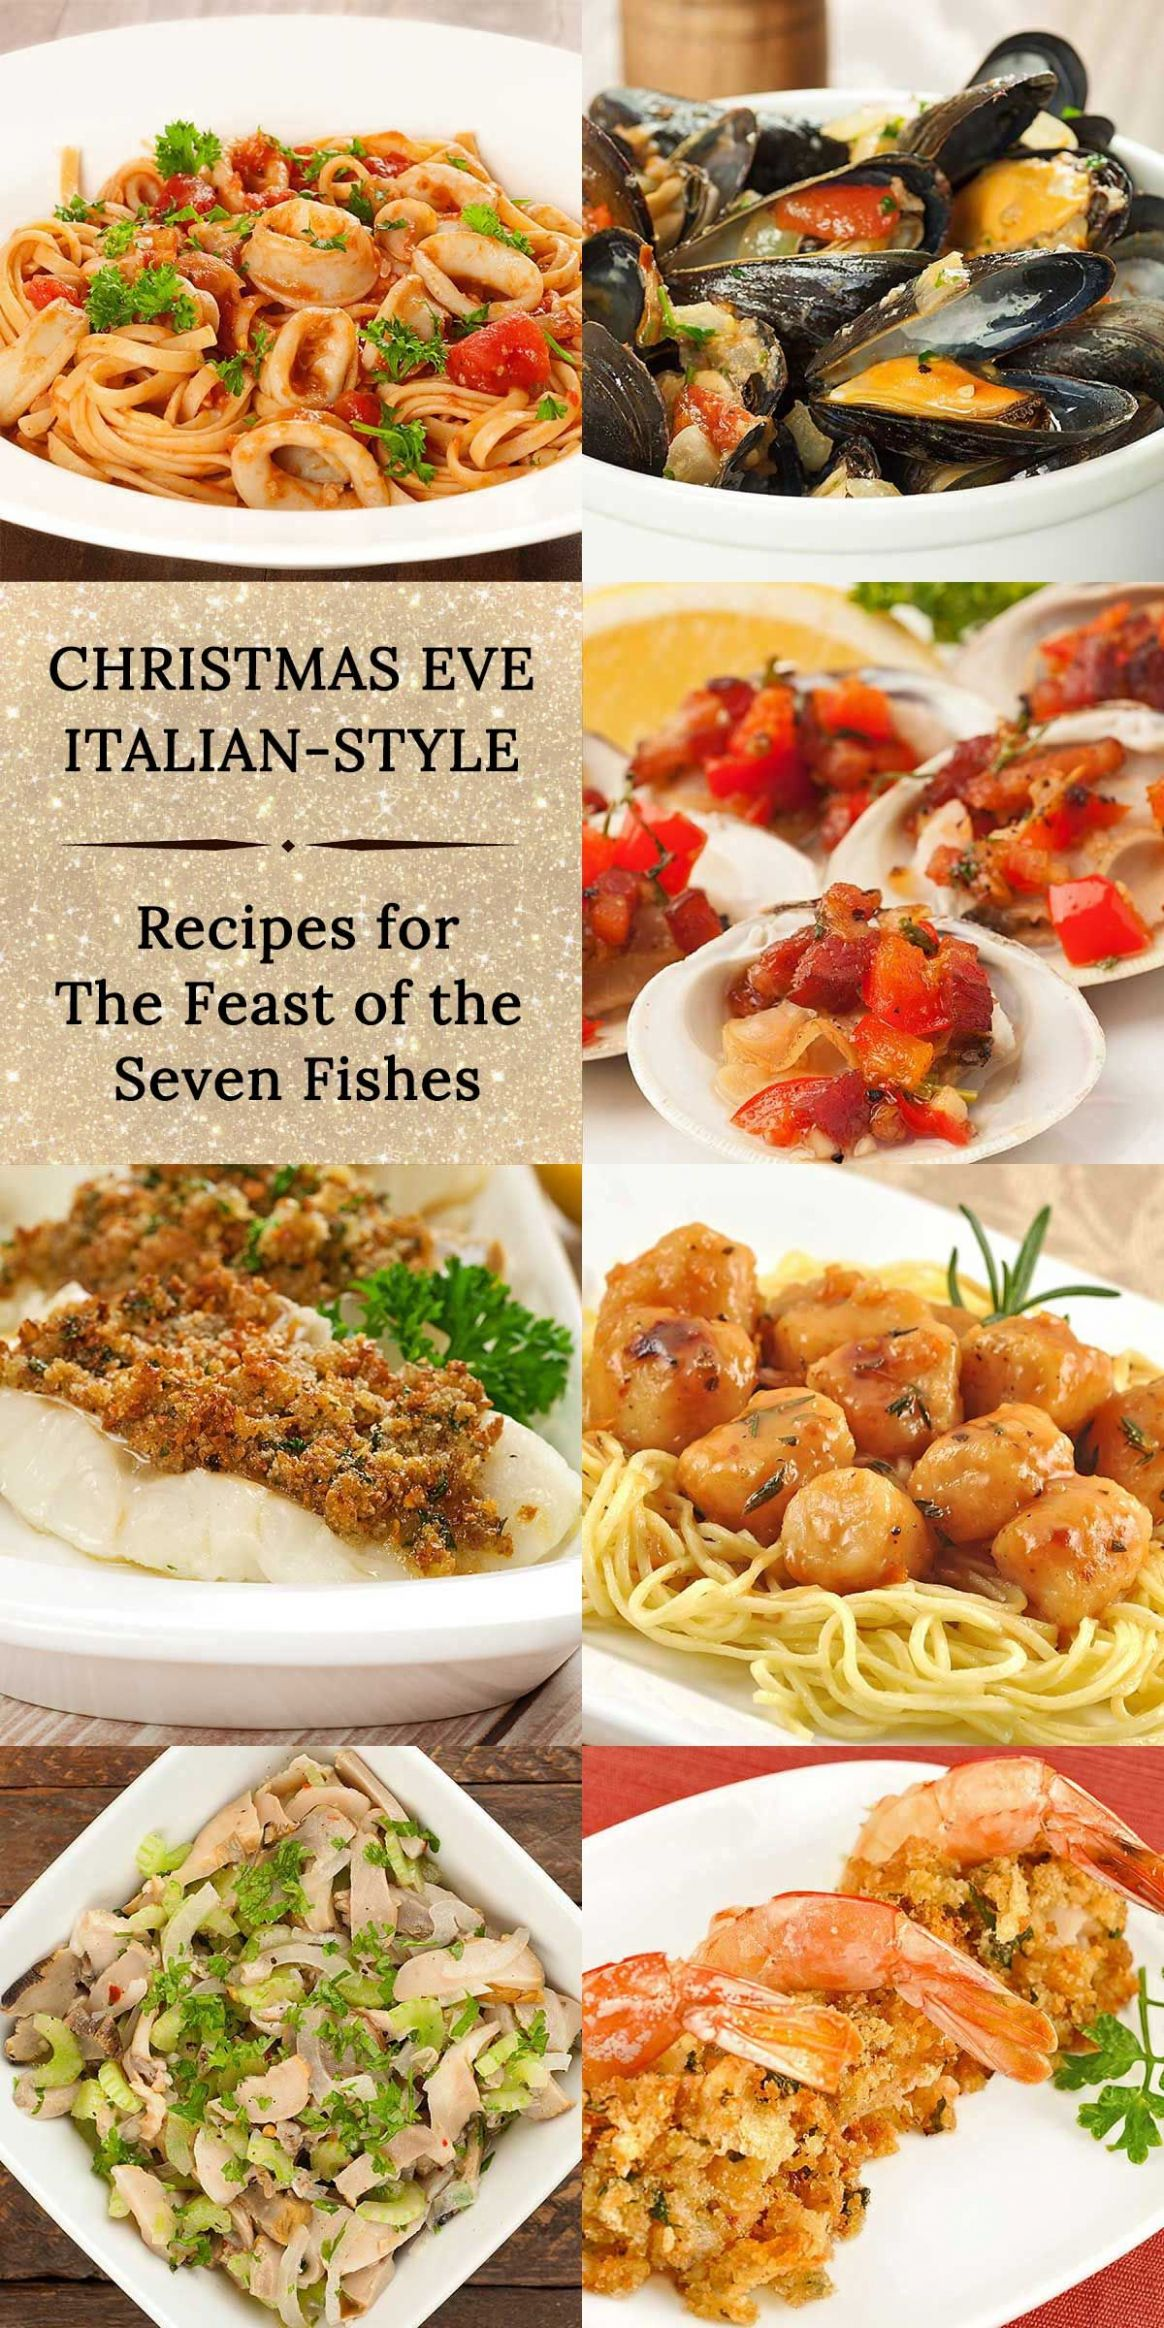 Holiday Menu: An Italian Christmas Eve | Christmas eve dinner menu ..